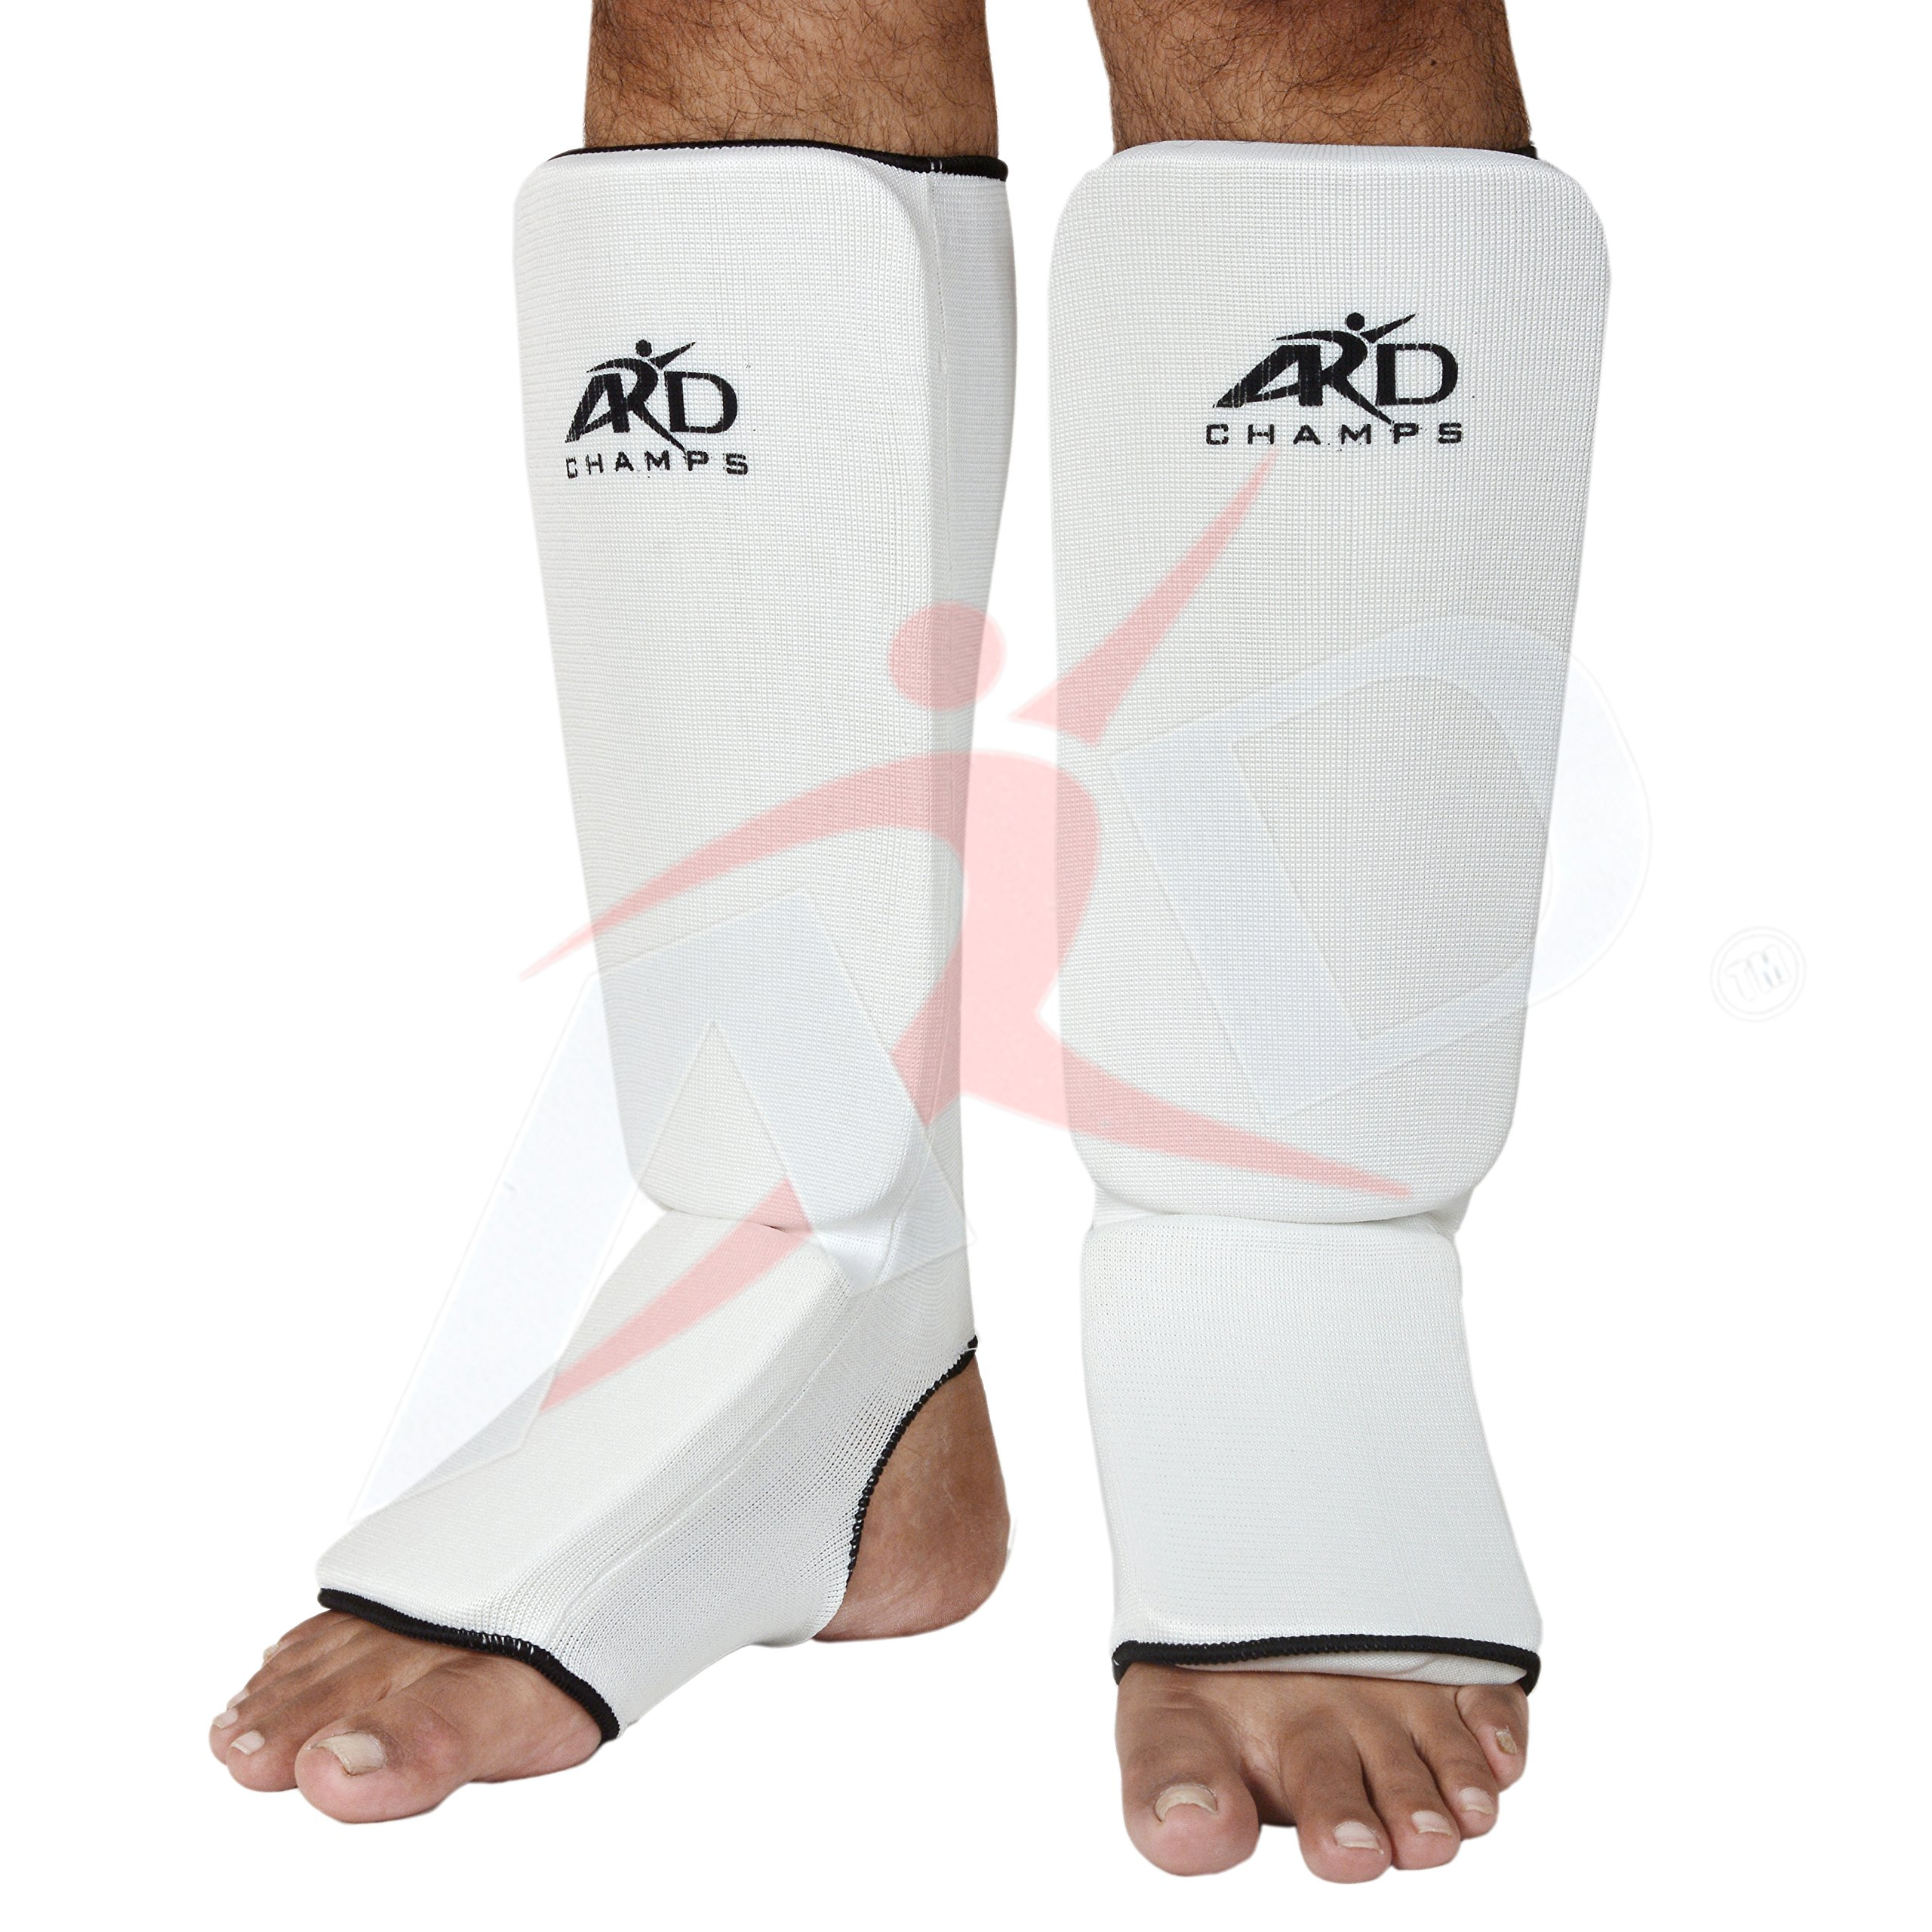 ARD Shin Instep Protectors, Guards Pads Boxing, MMA, Muay Thai (White, Small) by ARD-Champs